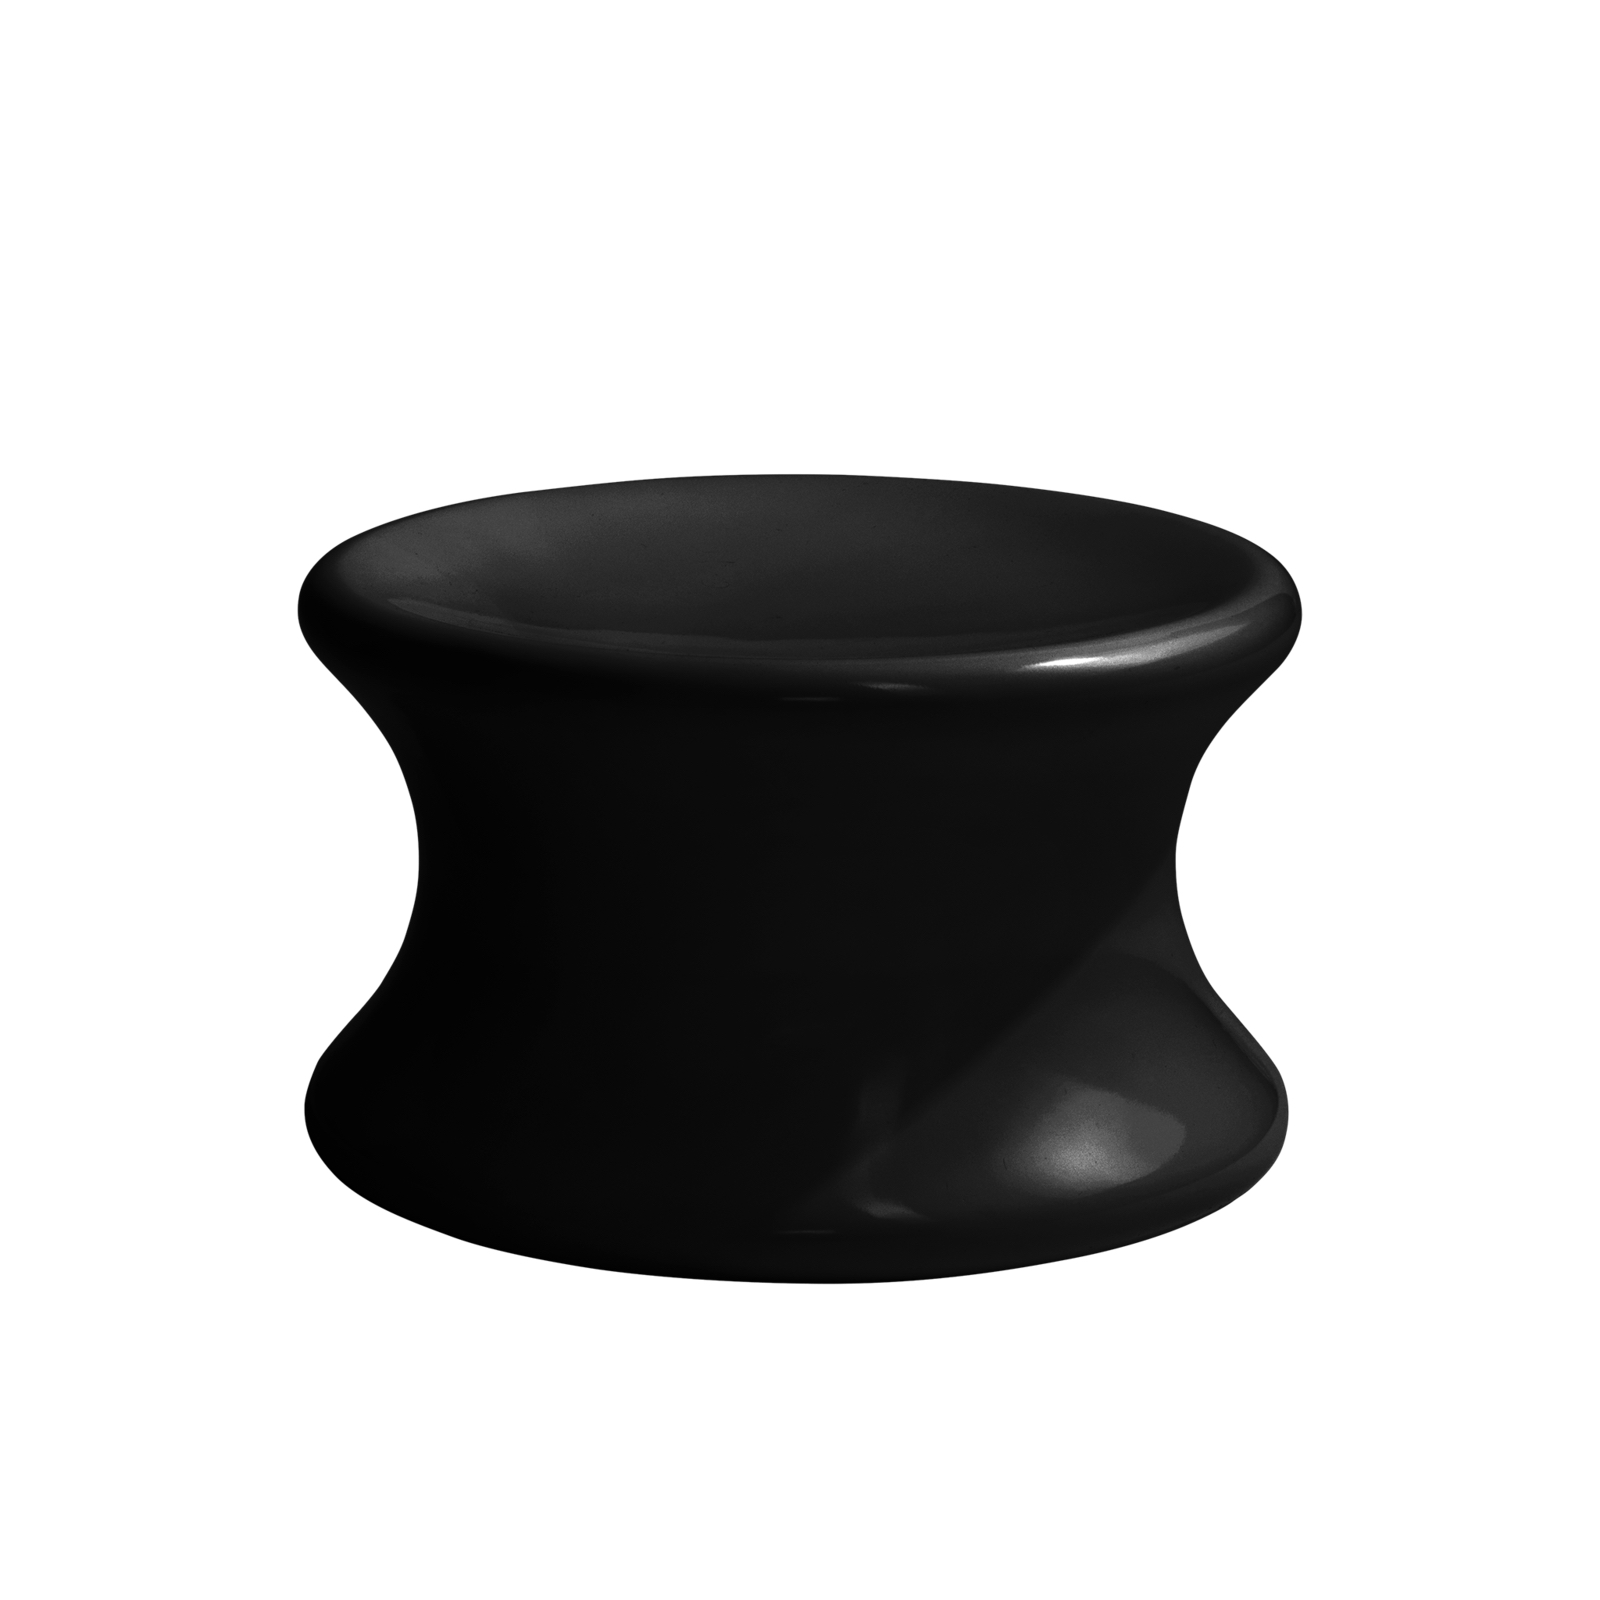 Eero Aarnio Stool / Side table MUSHROOM small